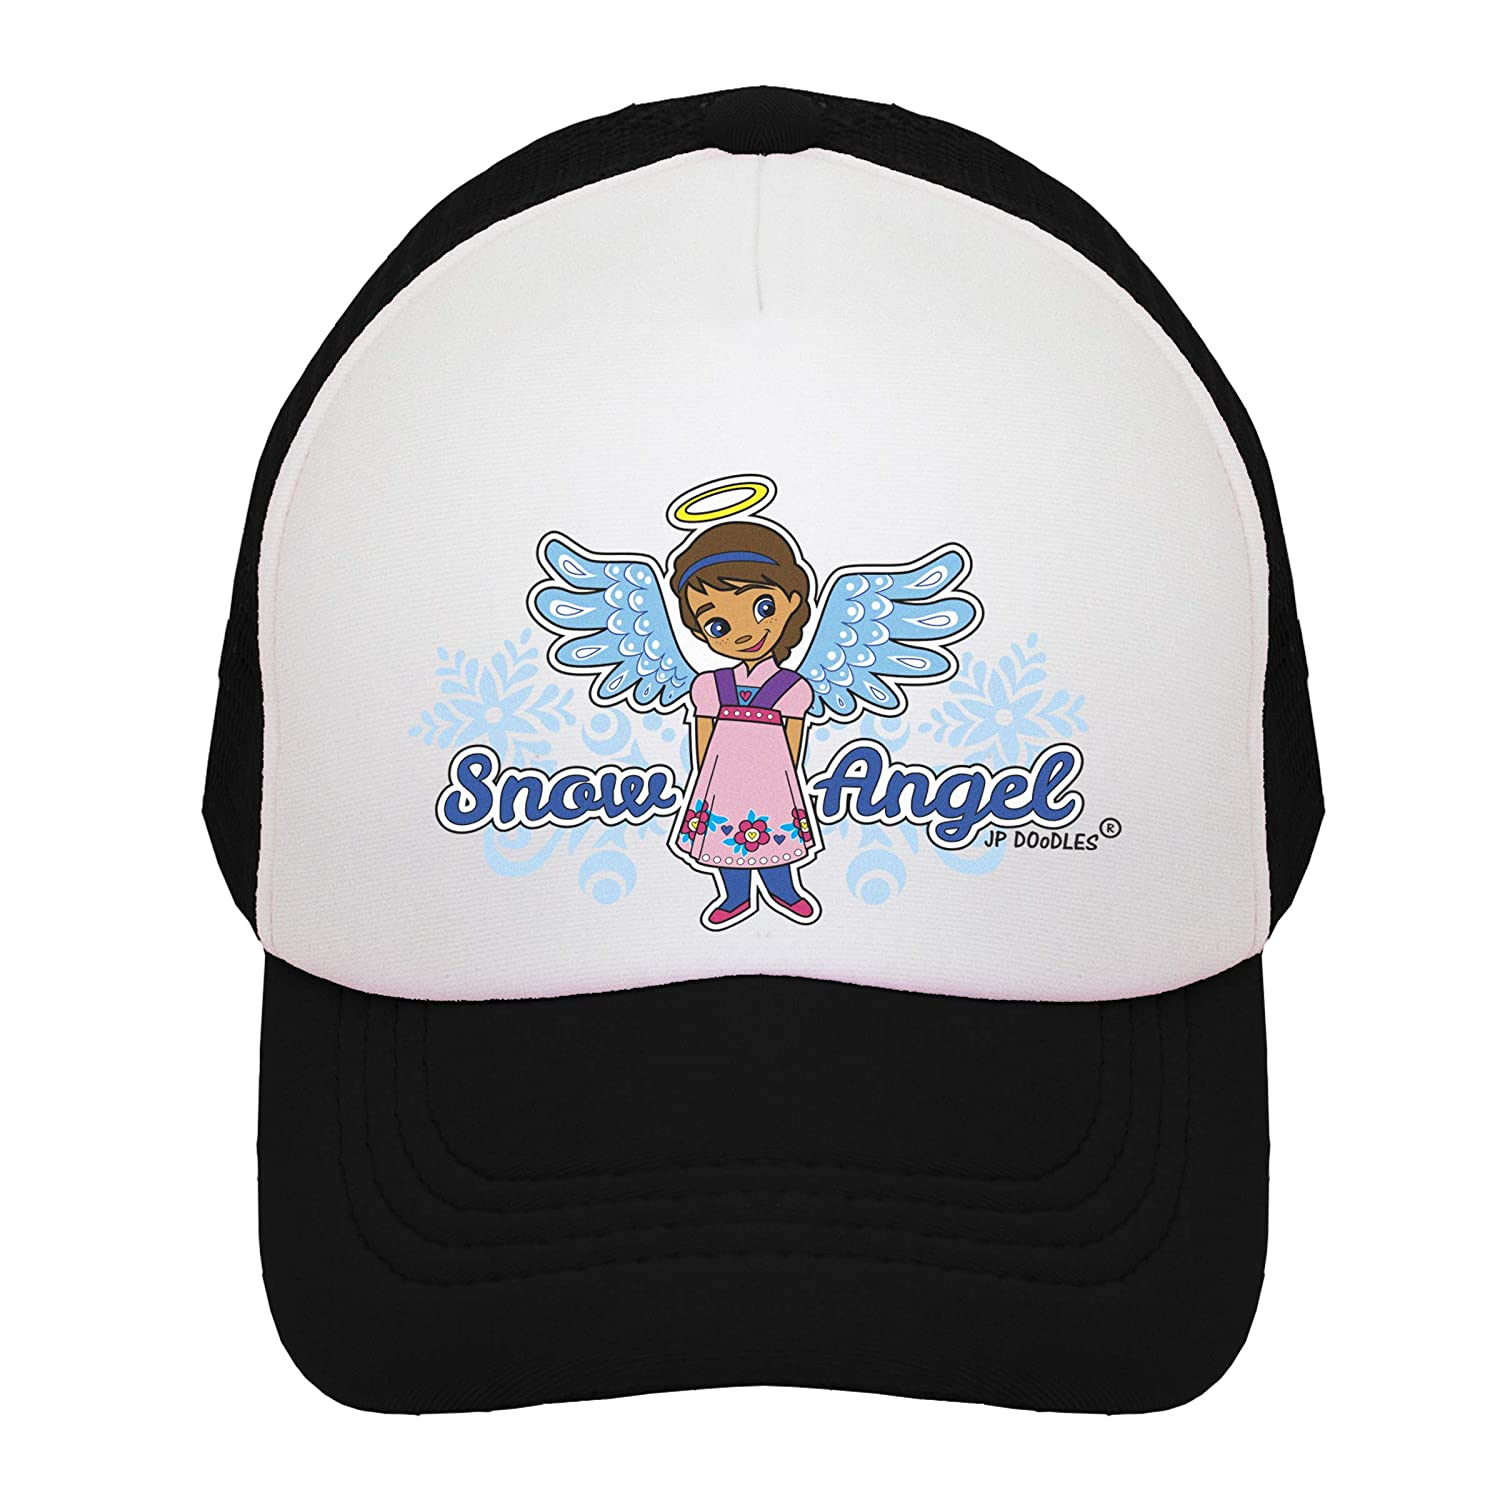 Toddler JP DOoDLES Snow Angel on Kids Trucker Hat and Youth Sizes The Kids Baseball Cap is Available in Baby